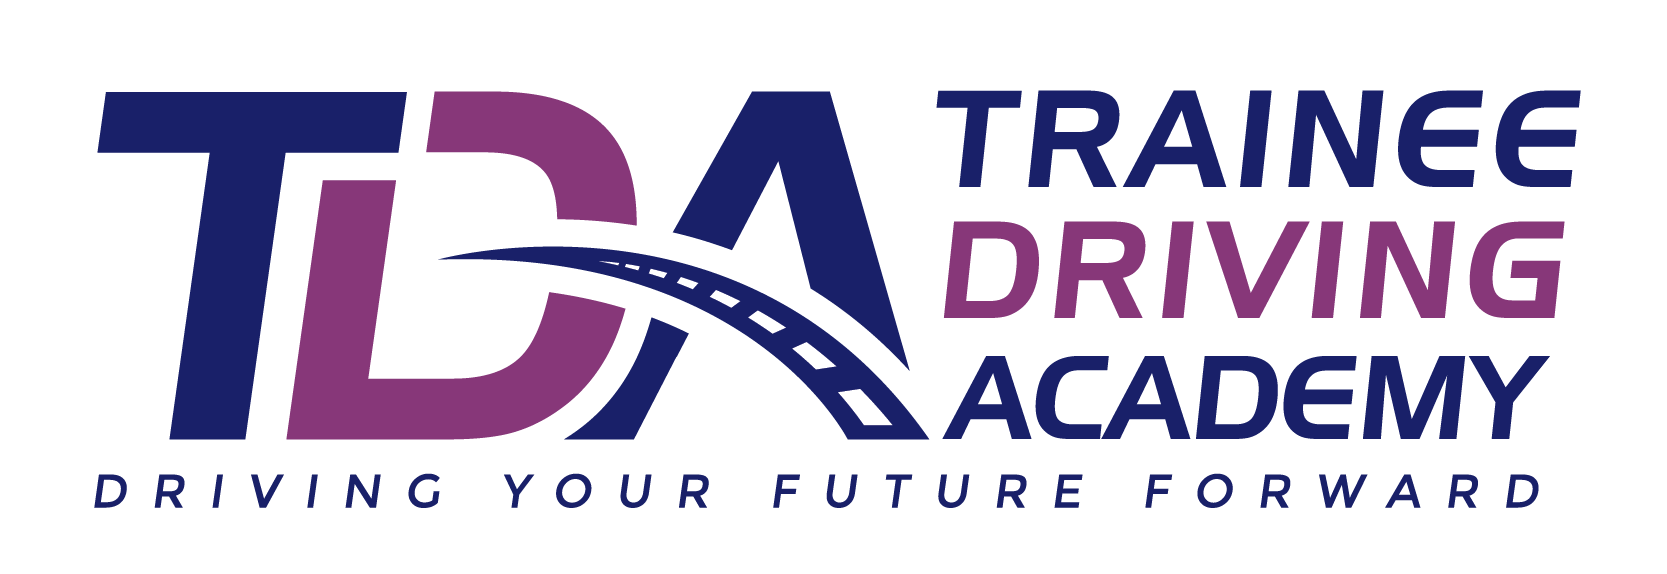 Trainee Driving Academy